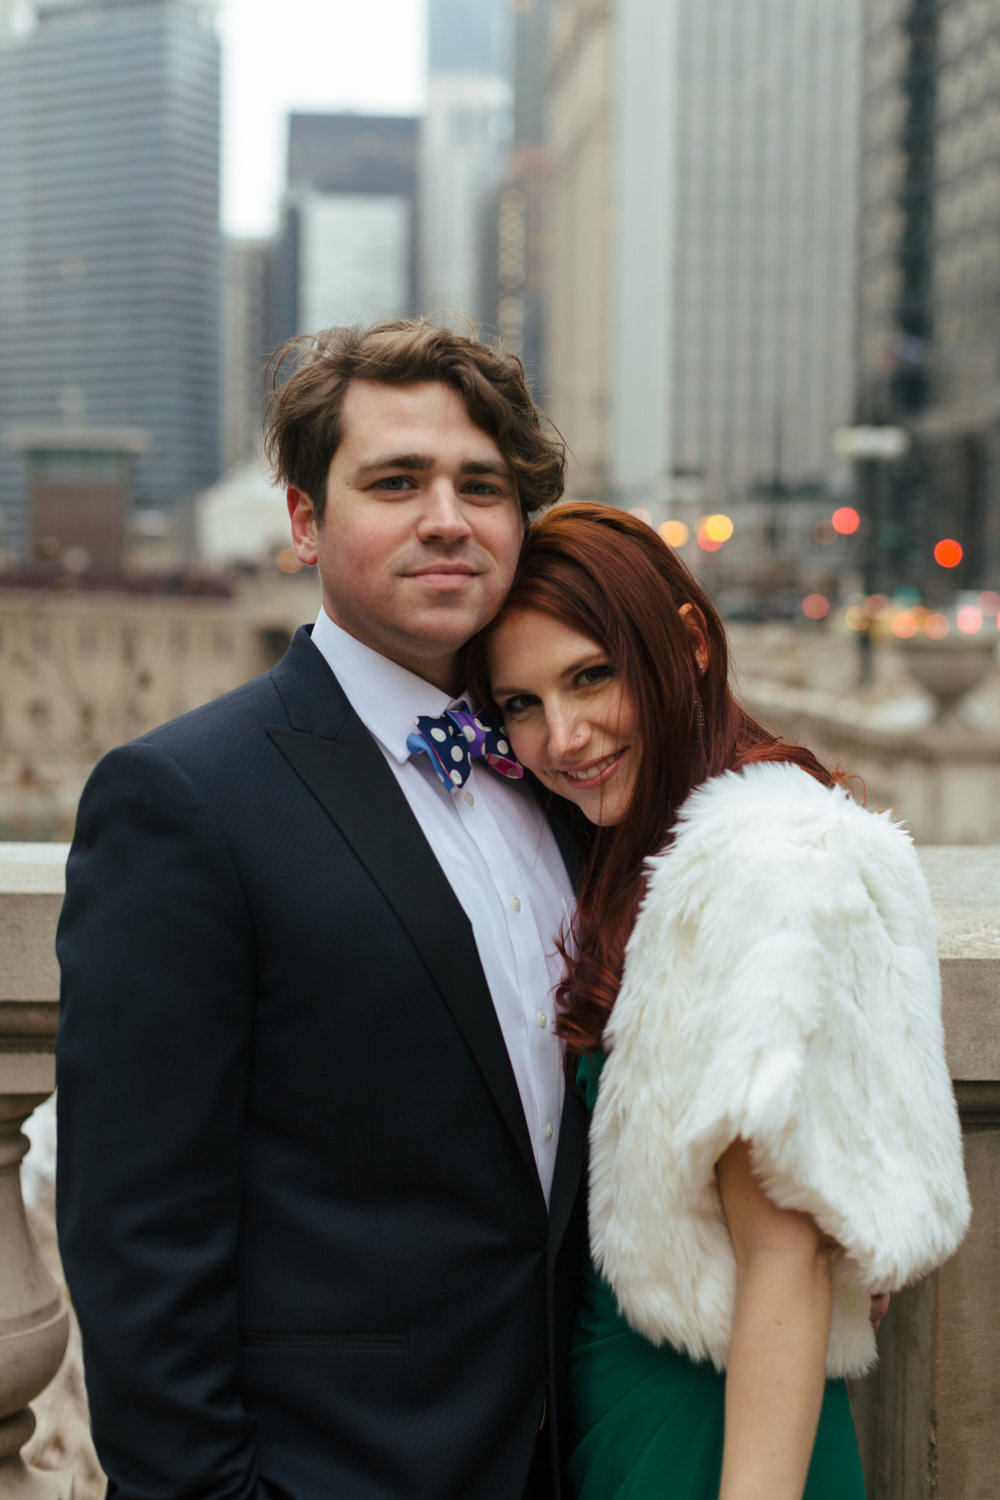 Chicago_elopement_wedding_6